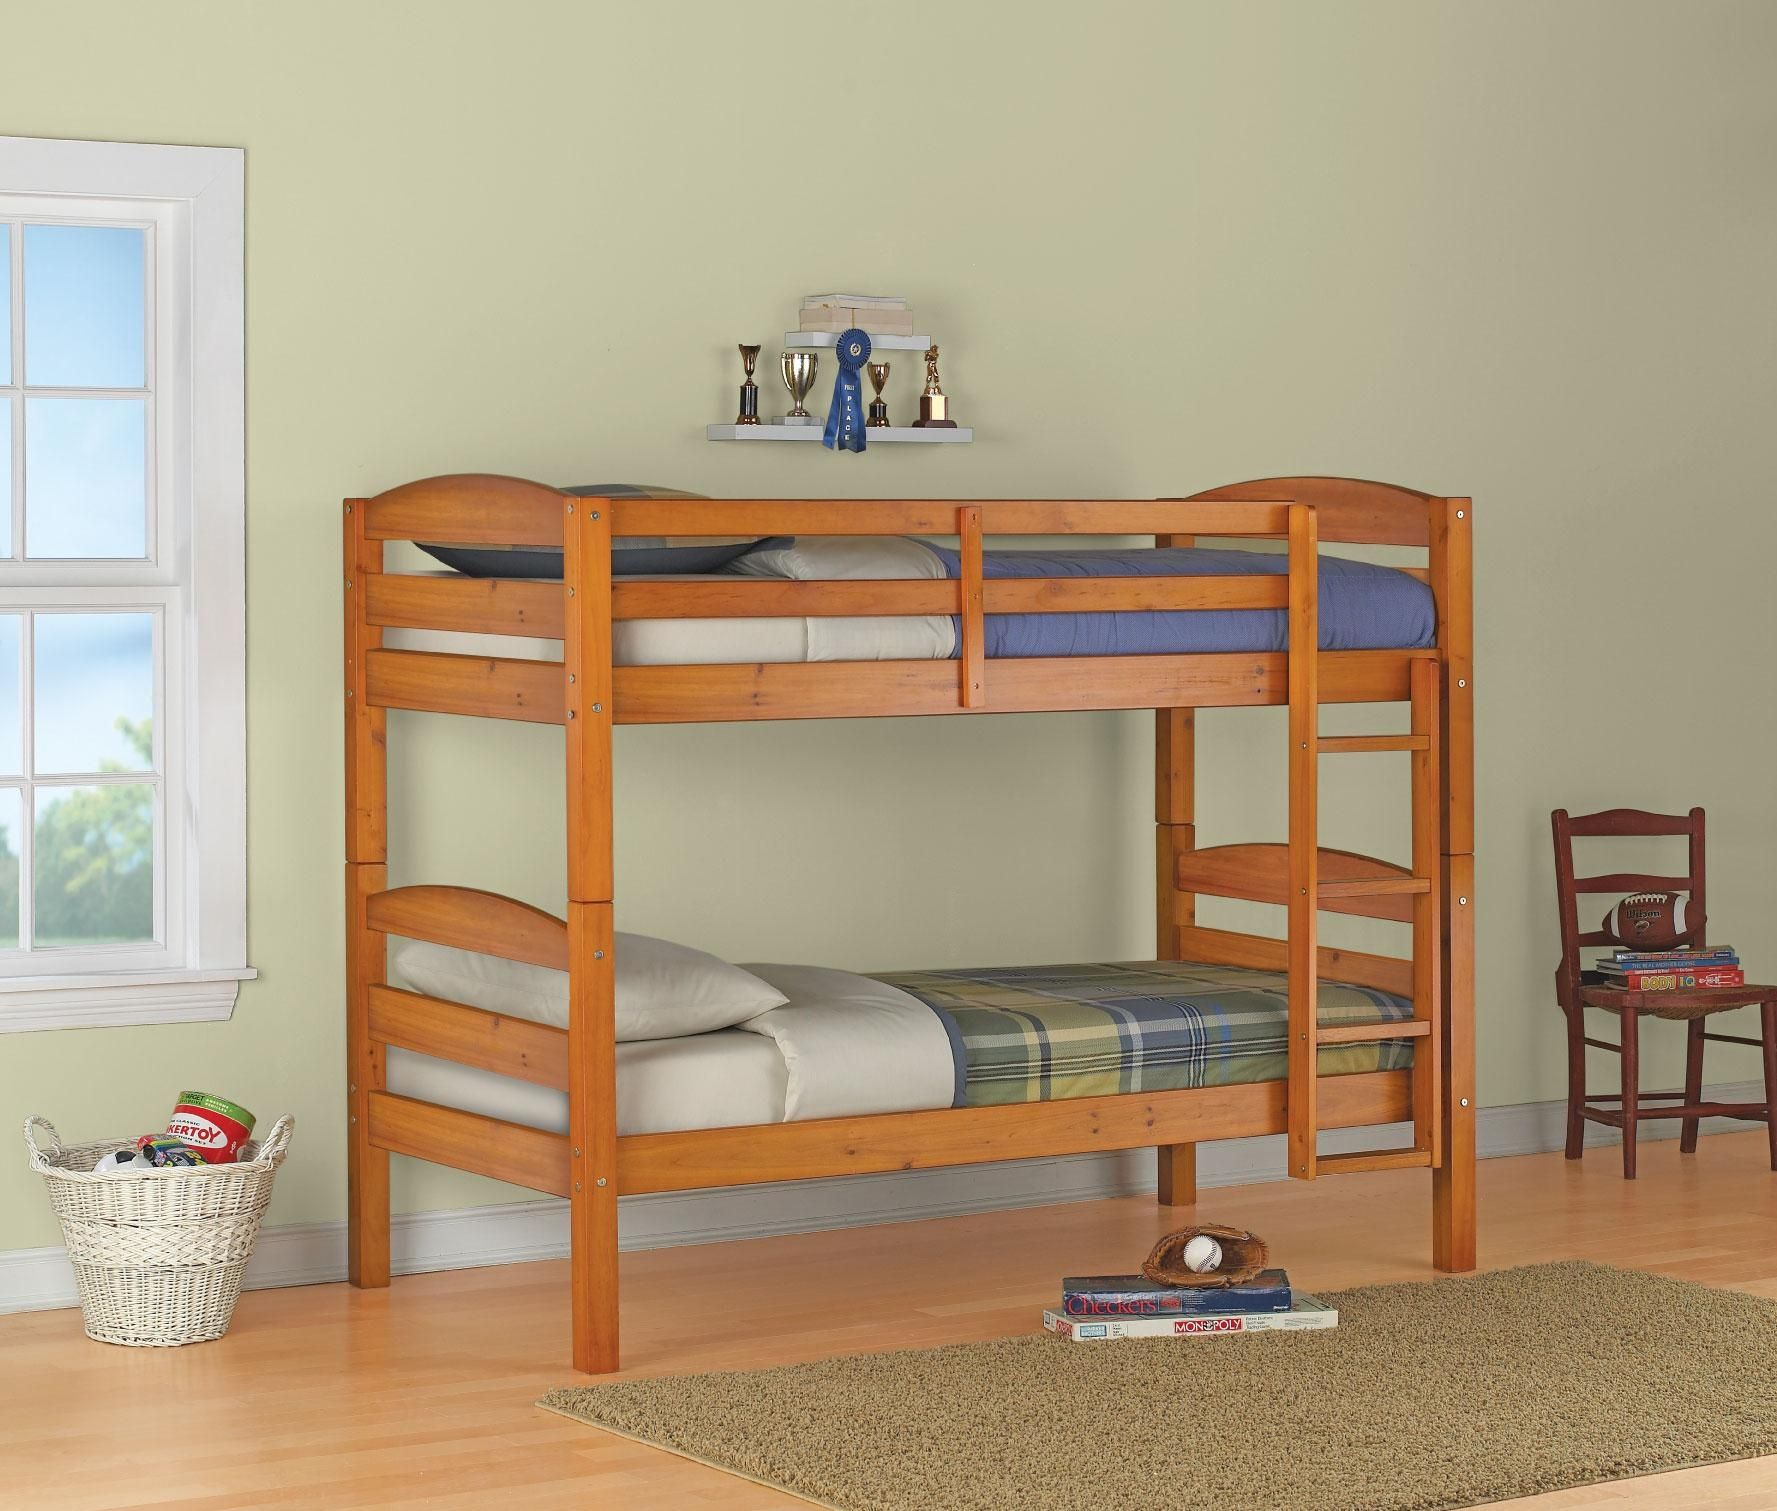 Small Room Design With Double Deck Bed Bunk Bed Designs Bunk